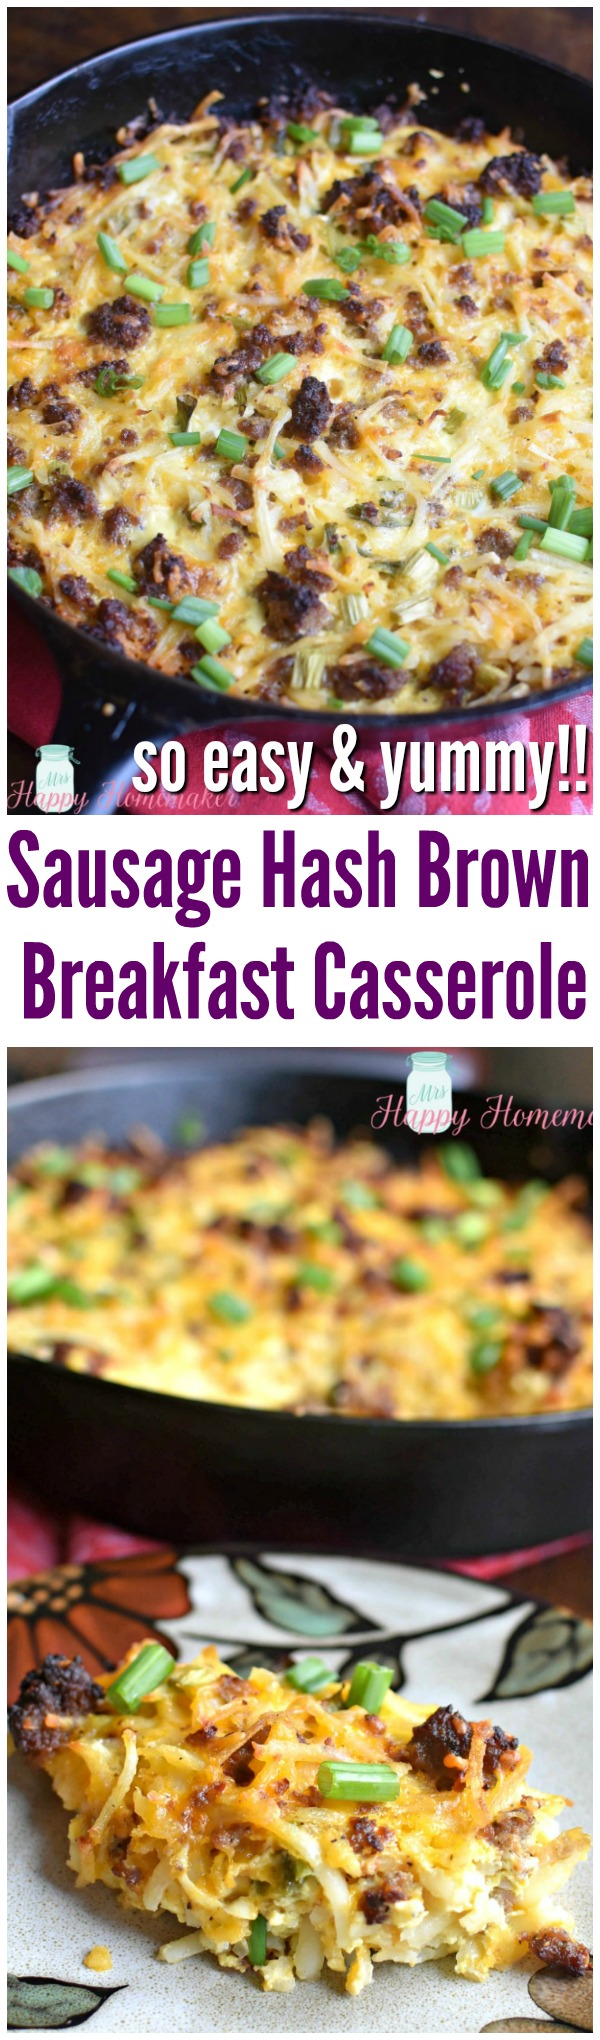 Sausage Hash Brown Breakfast Casserole - so easy and yummy!! | MrsHappyHomemaker.com @thathousewife #breakfastcasserole #casserole #breakfast #brunch